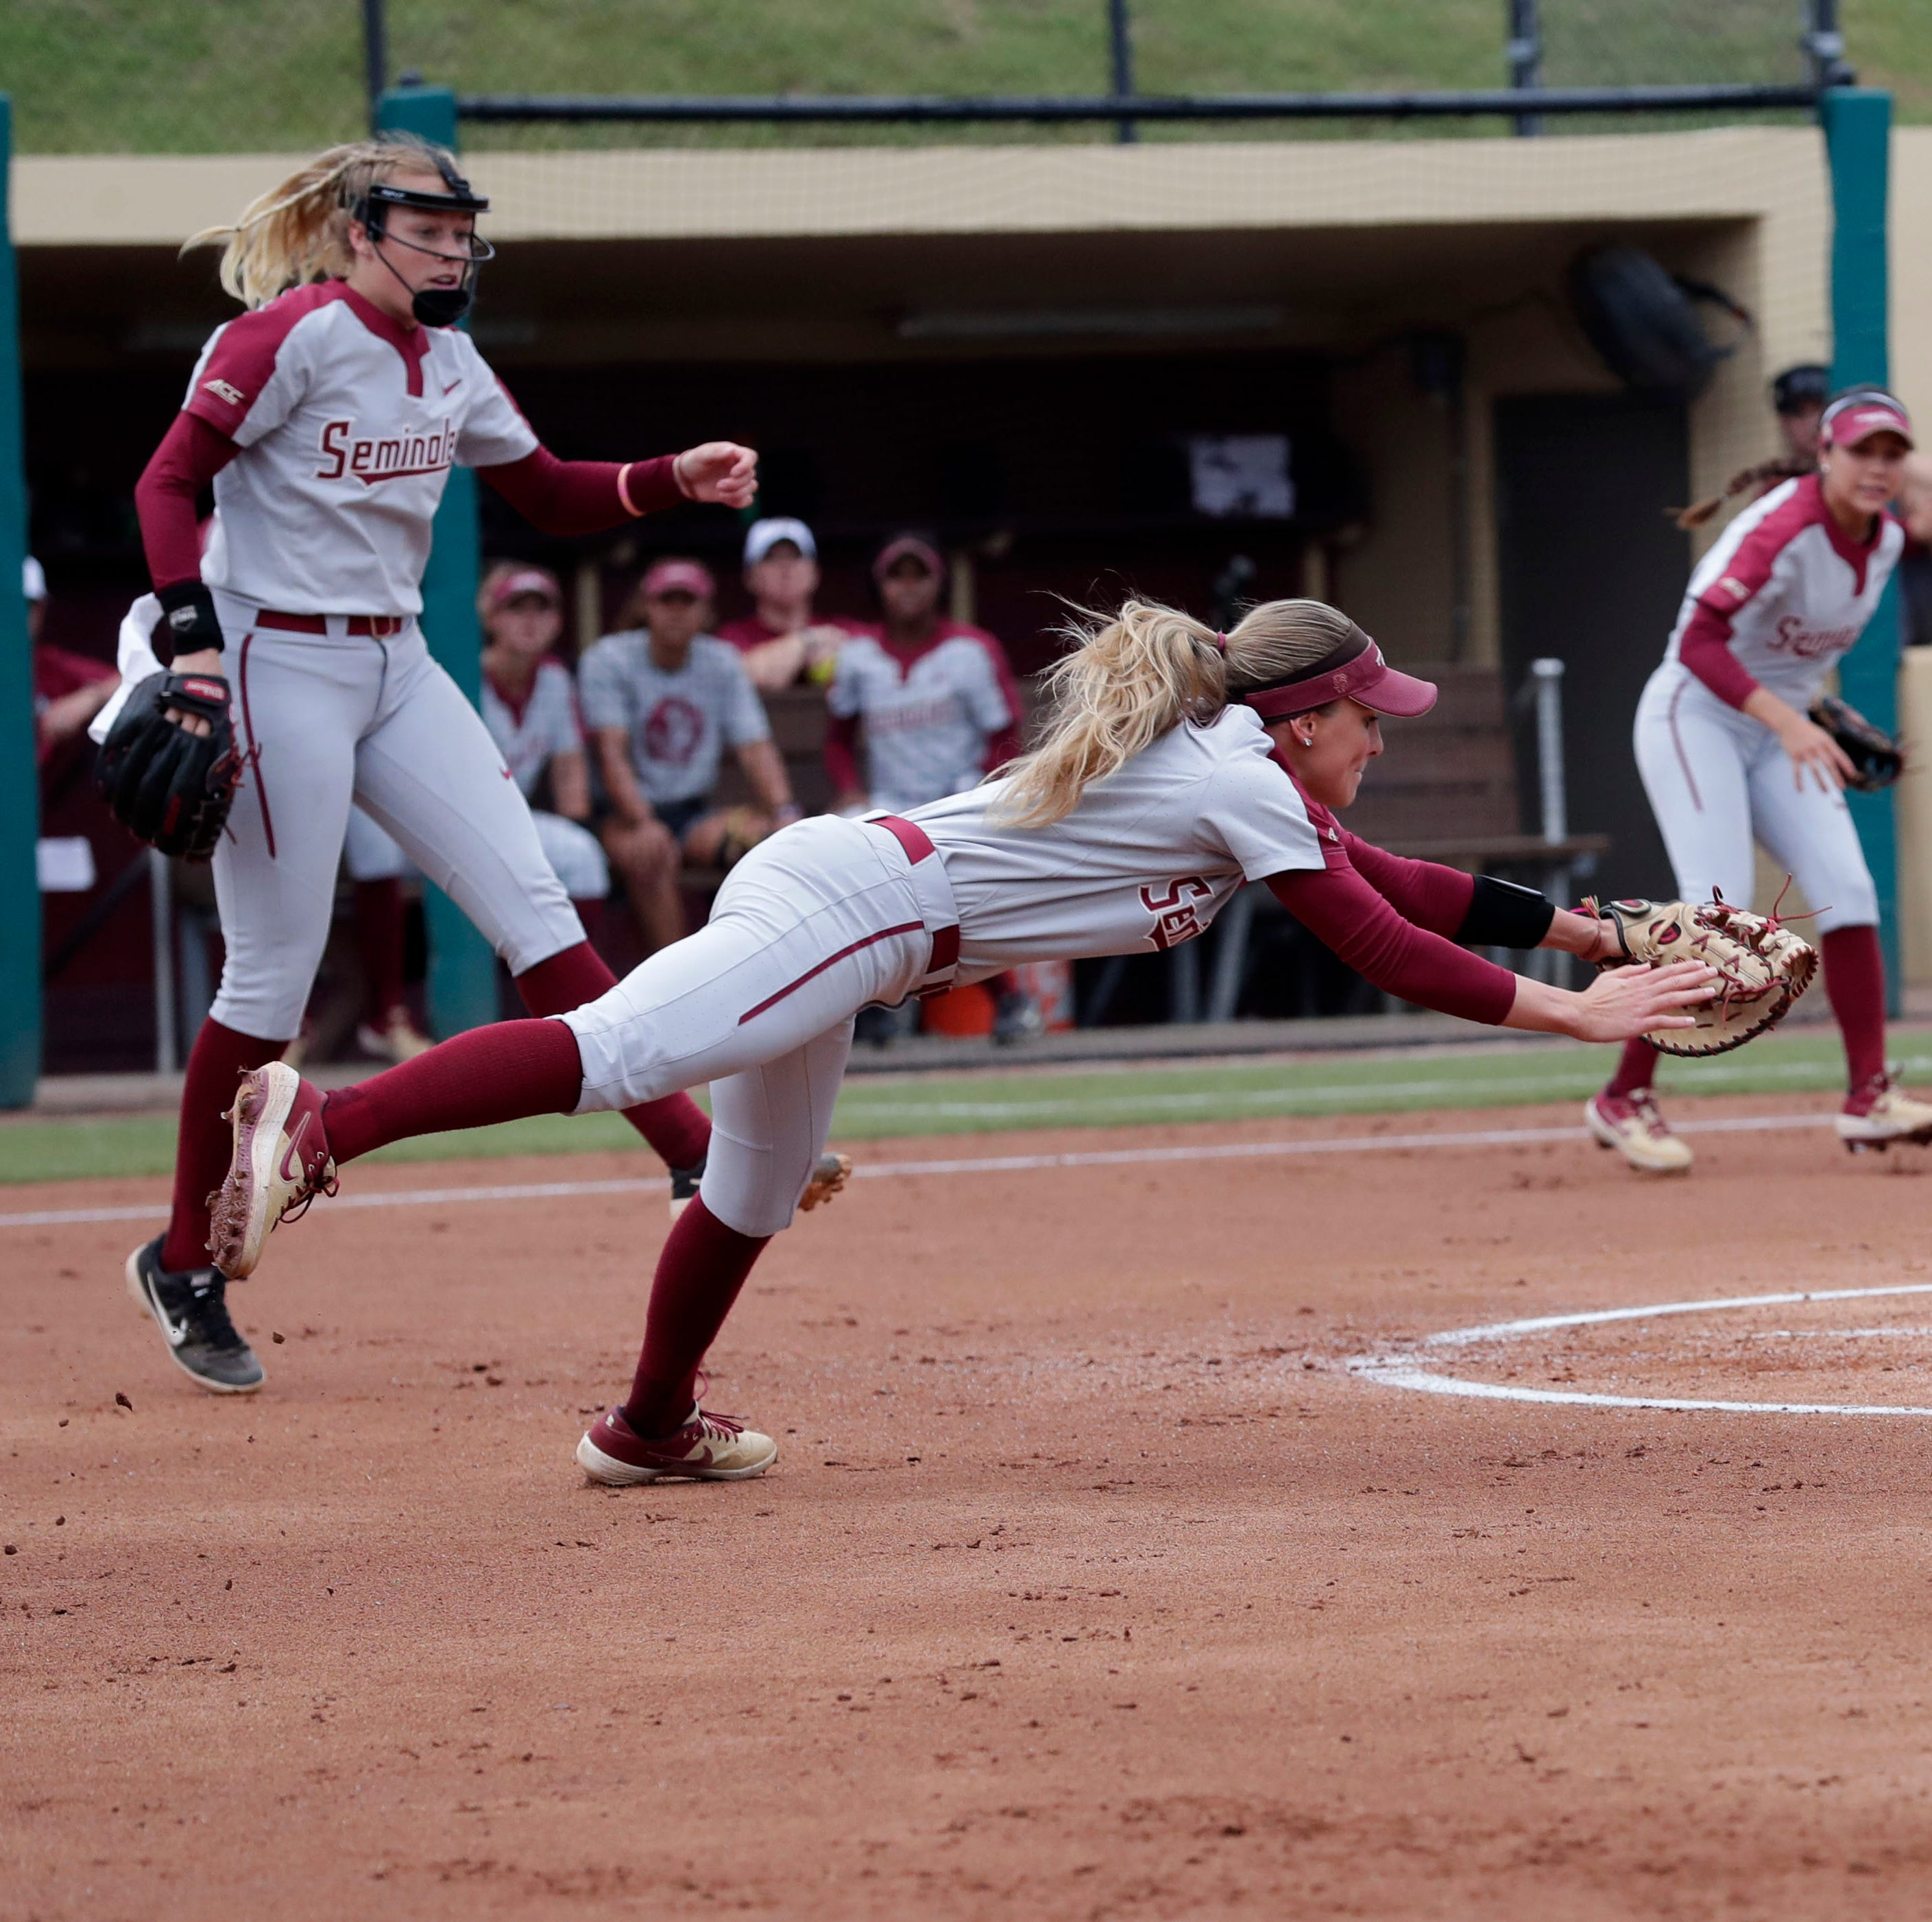 How to watch, stream Florida State vs. North Carolina in 2019 ACC Softball Championship